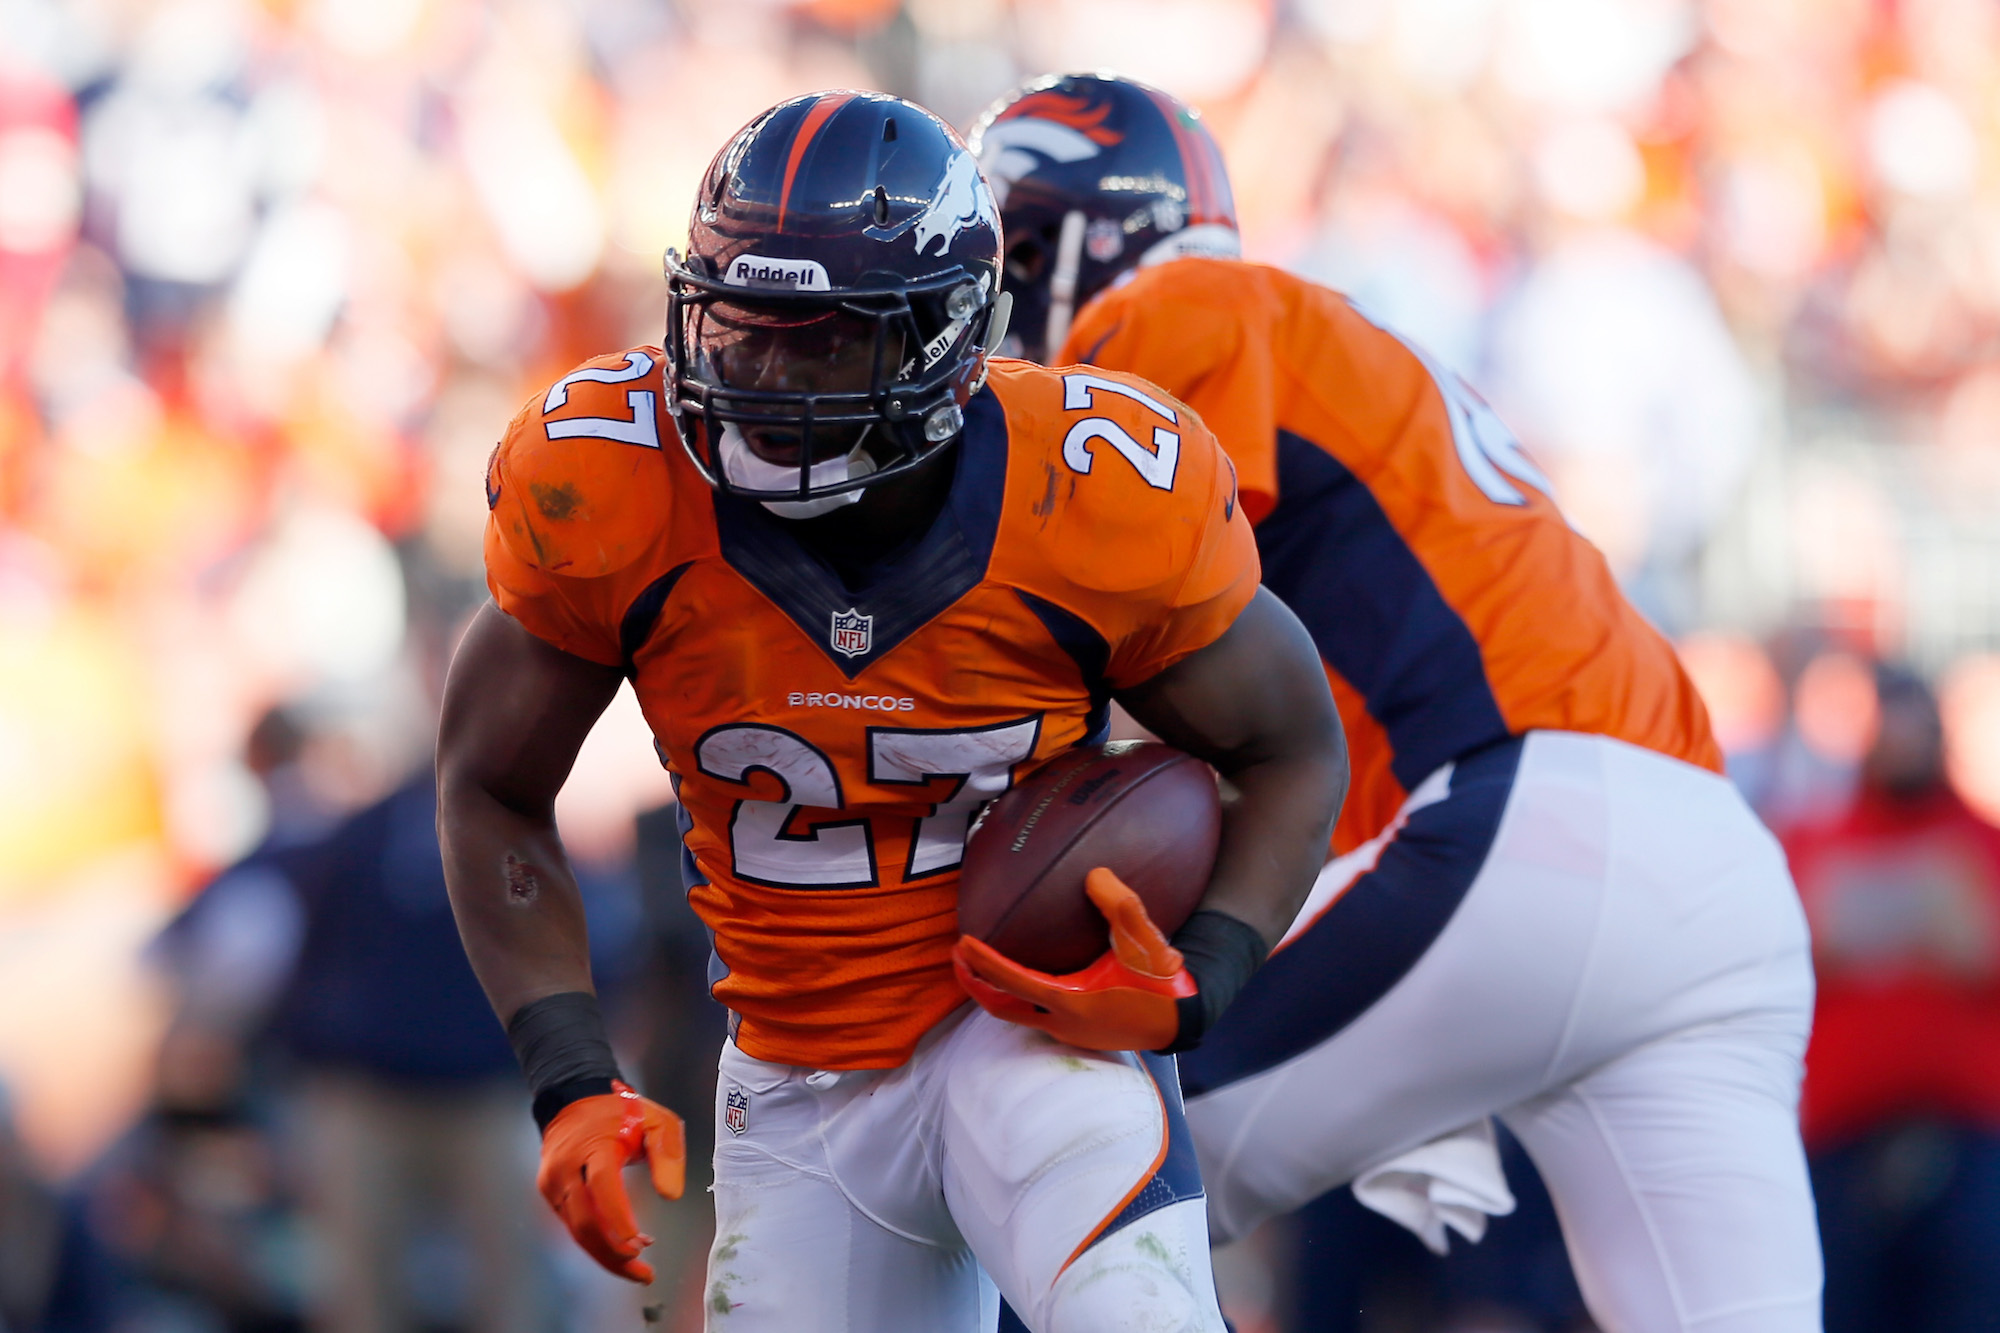 While Knowshon Moreno never turned into a star, he made more than $20 million in the NFL.